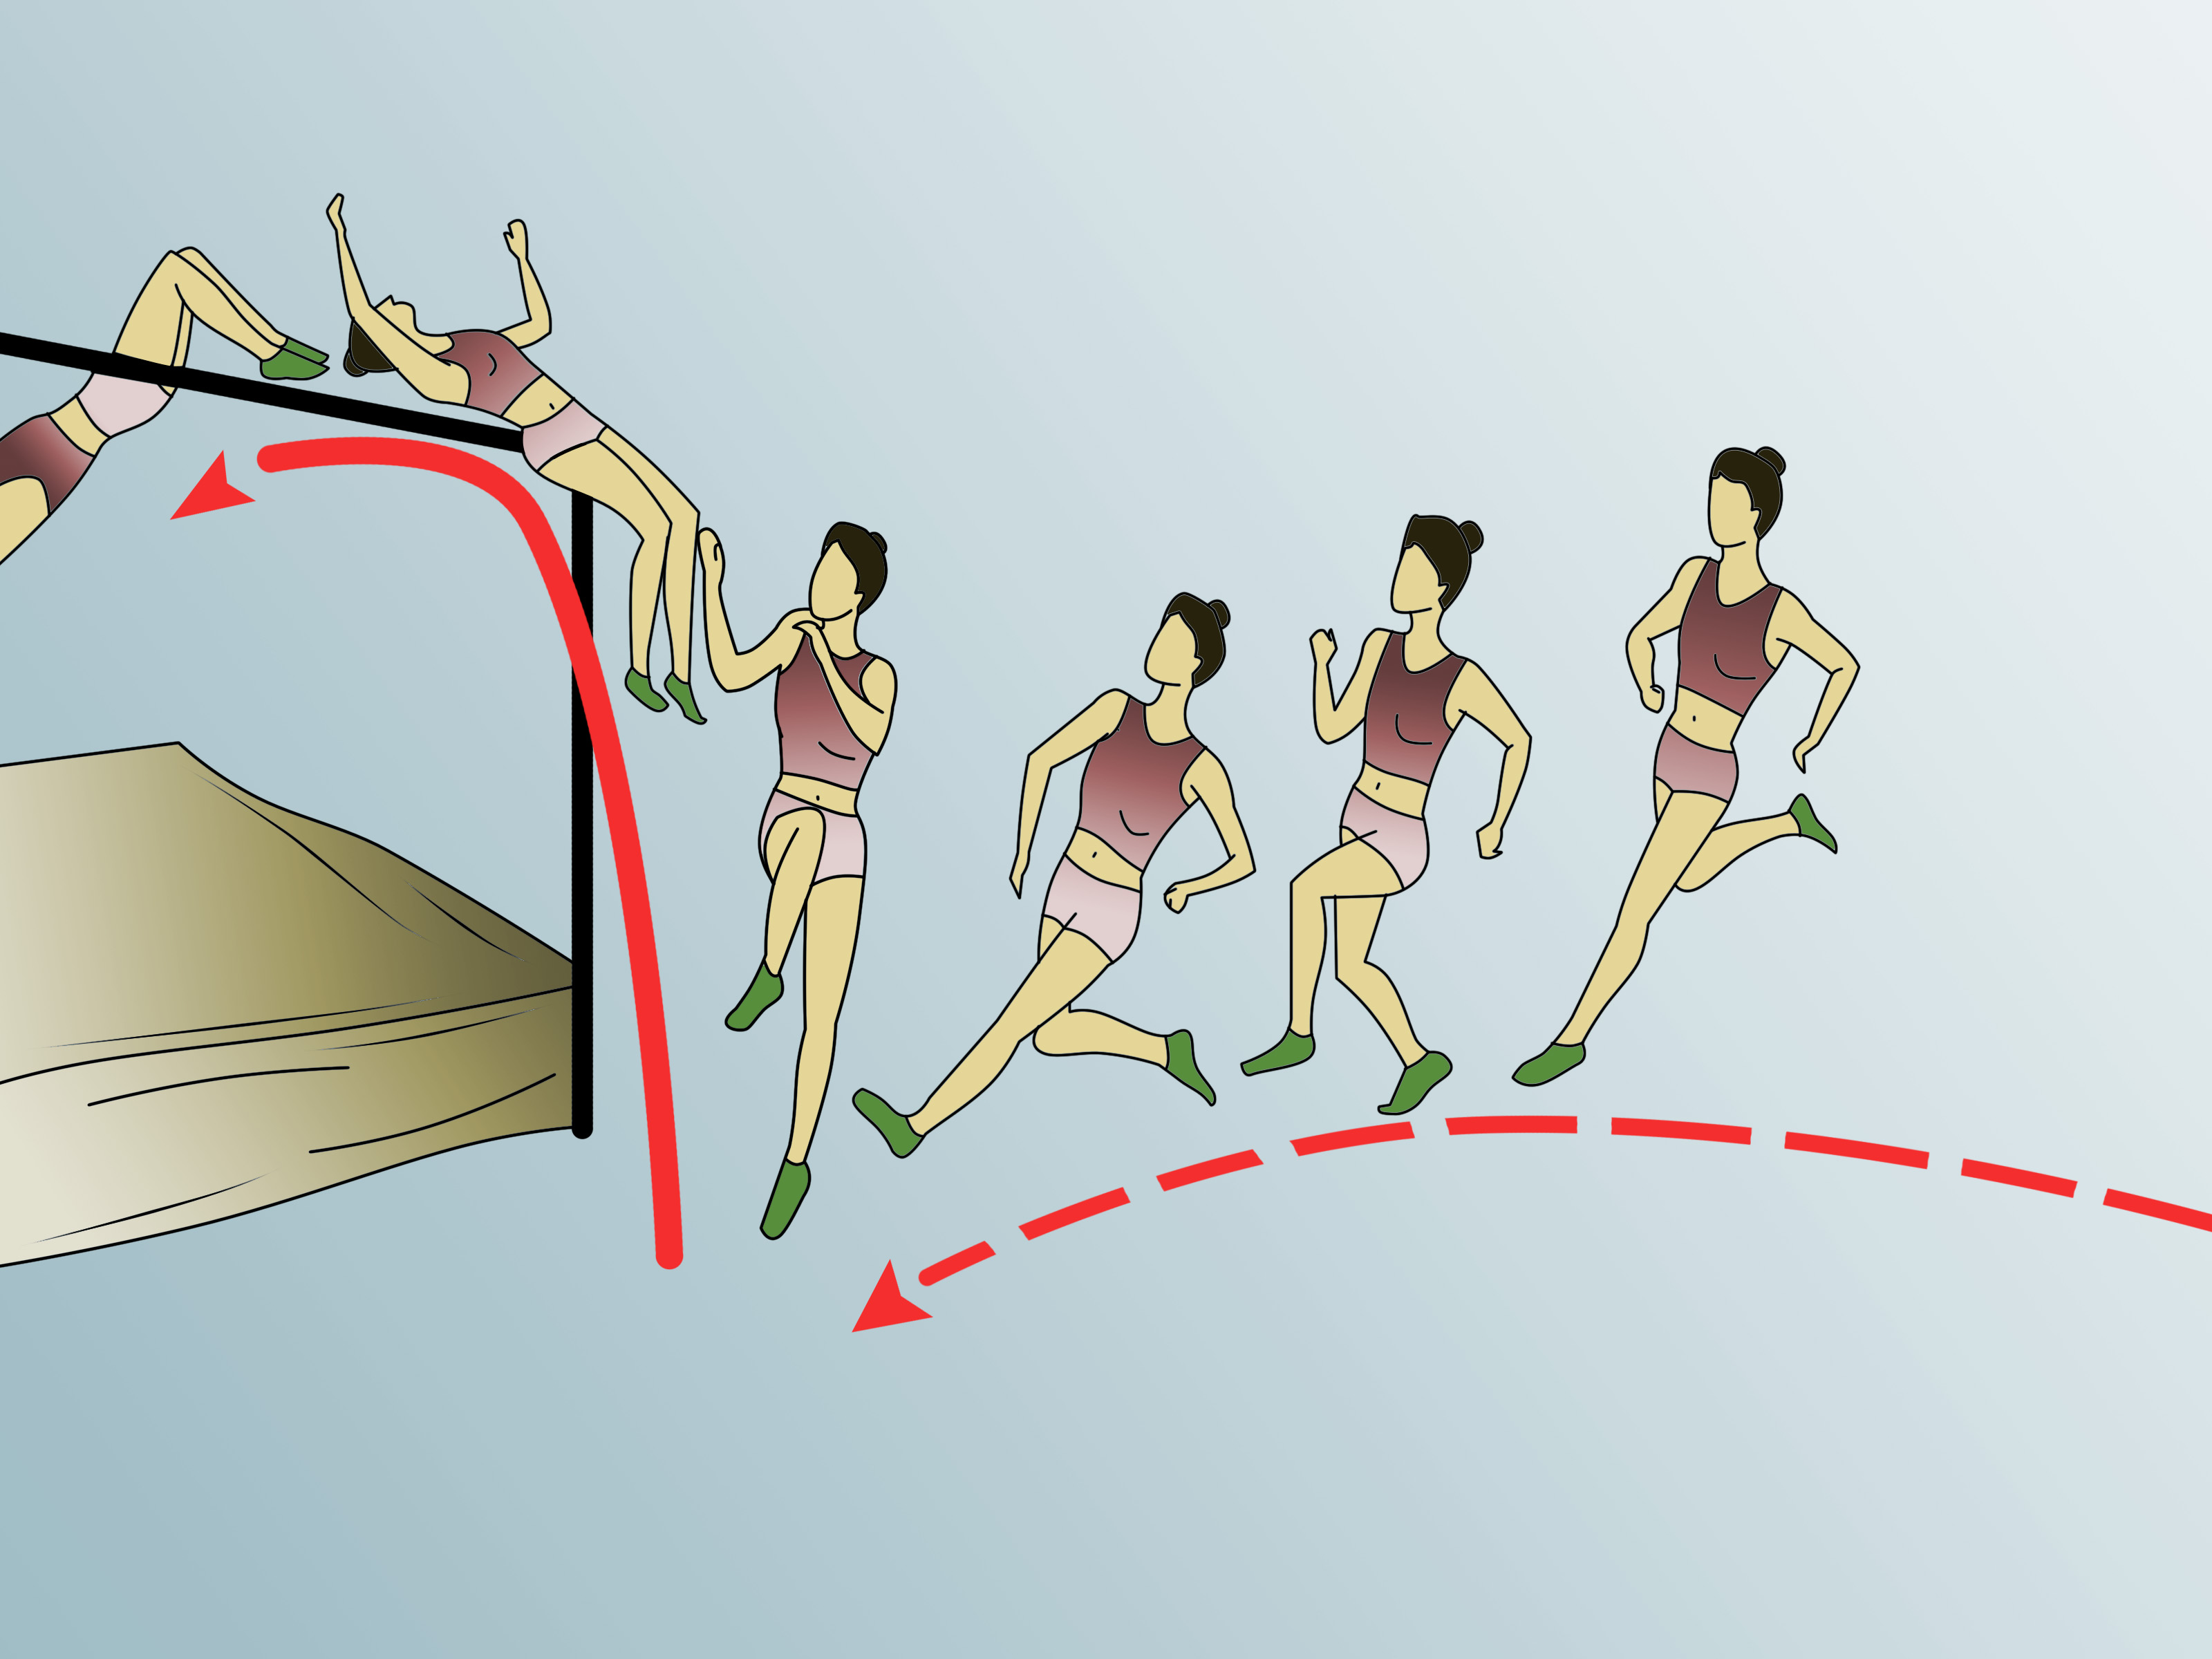 Rules to play High Jump